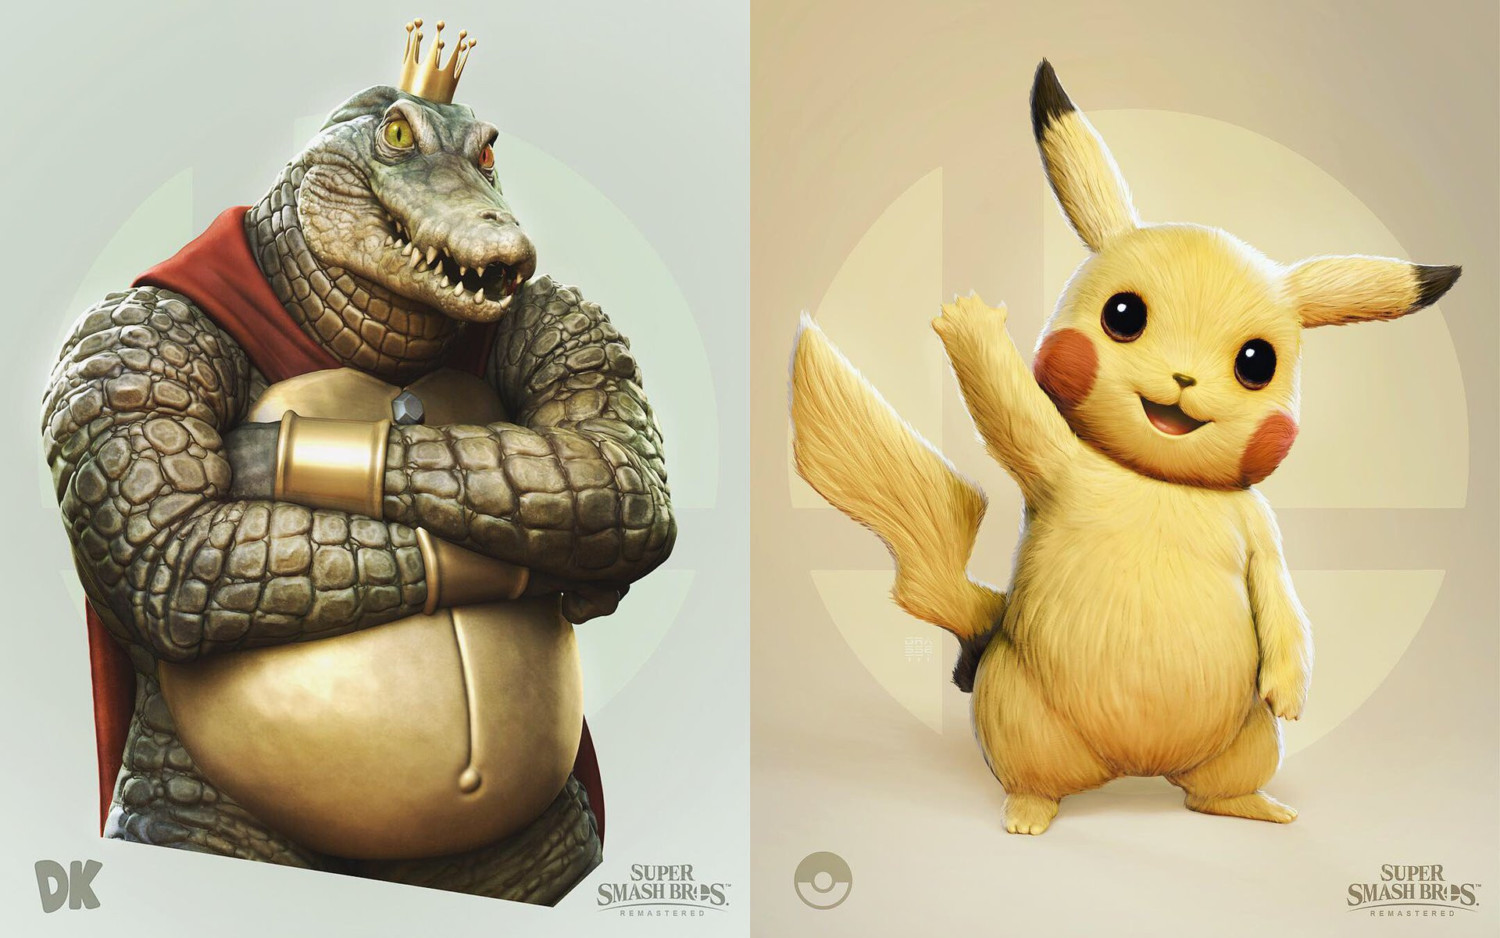 God Of War Artist Returns With 'Remastered' Fan-Art Of King K. Rool & Pikachu